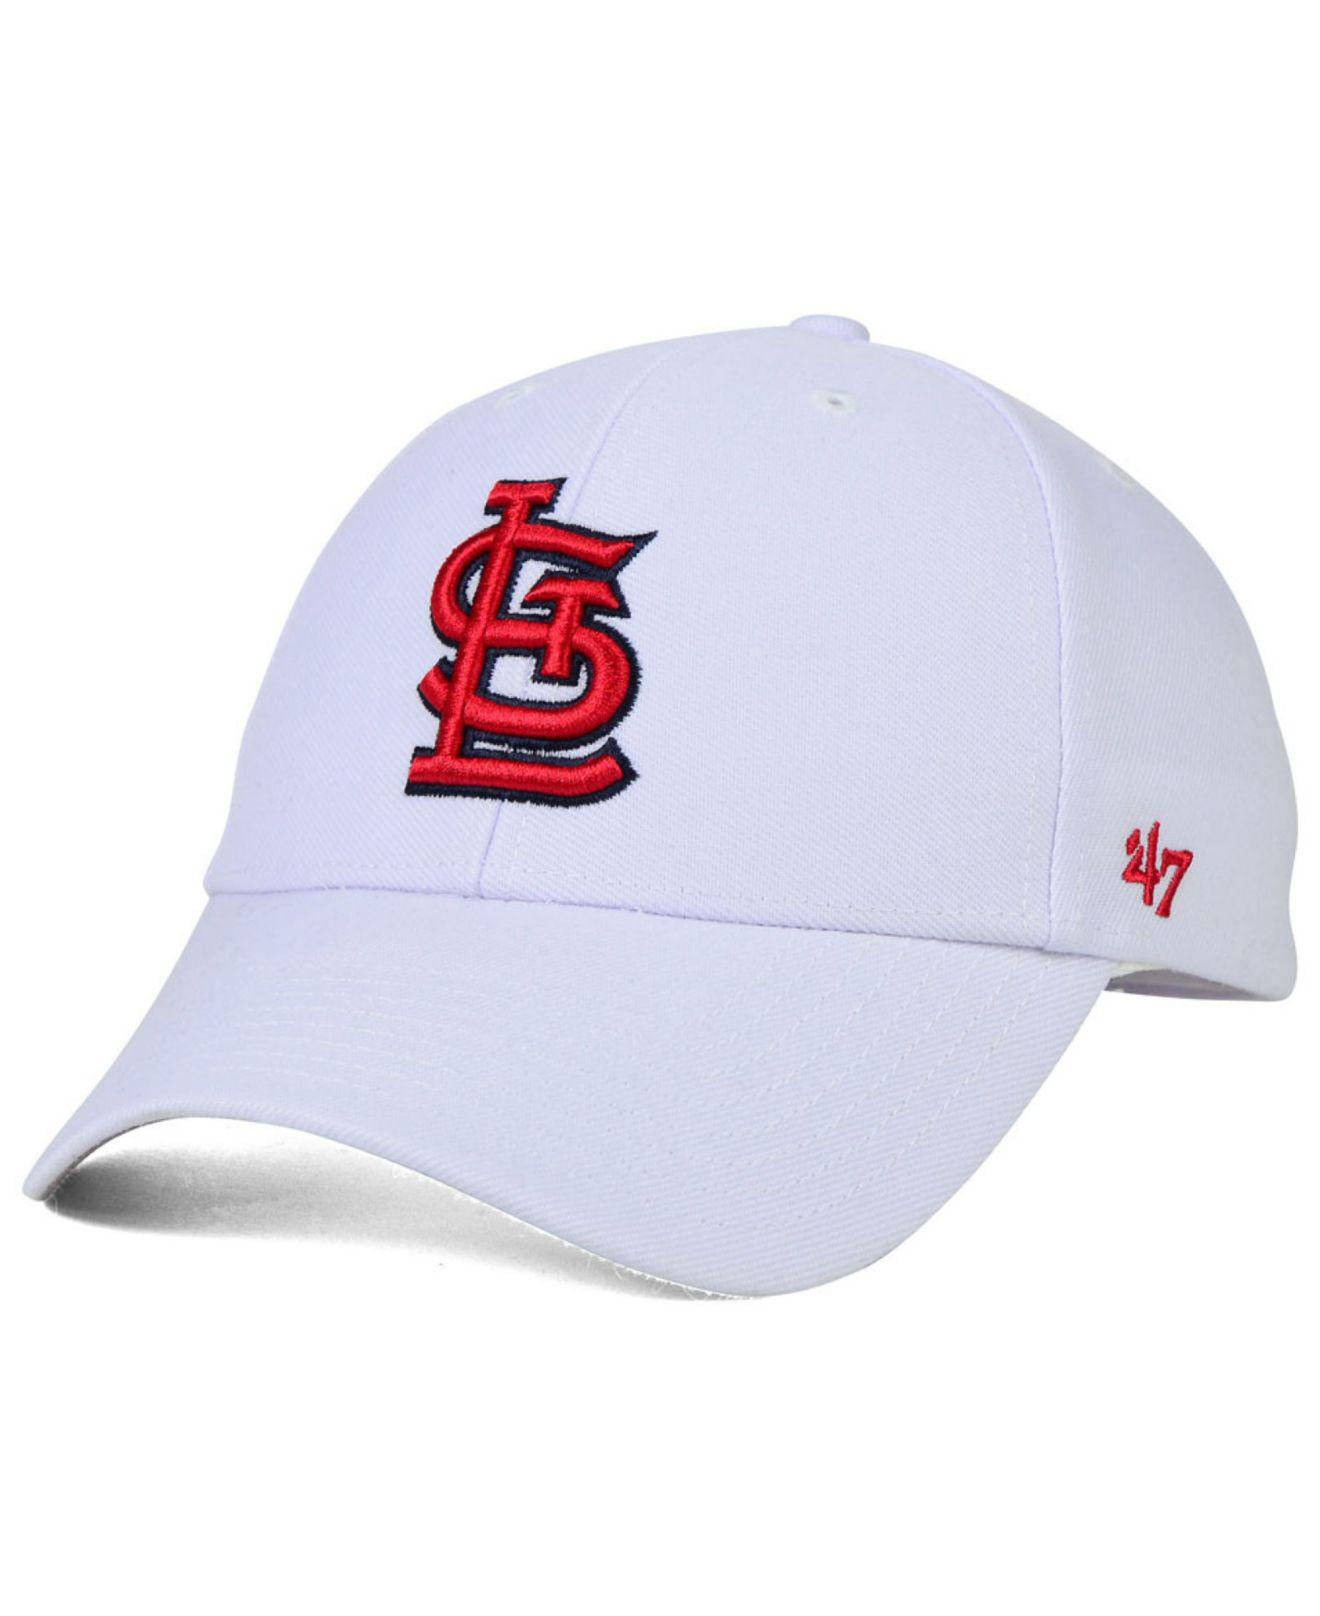 new styles ae13b 798d0 47 Brand. Men s White St. Louis Cardinals Mvp Curved Cap